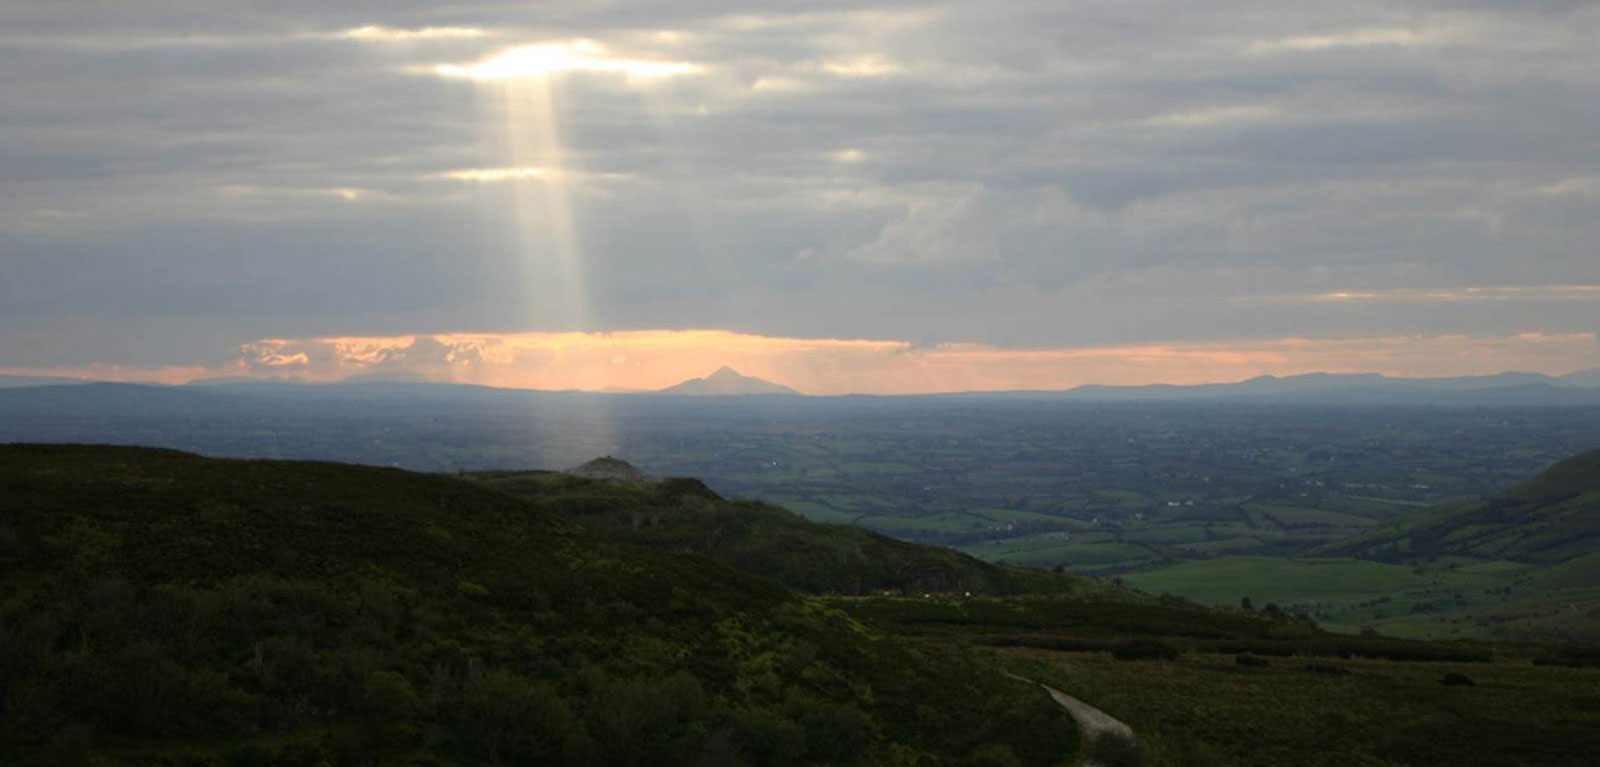 QUB-GAP-Banner-Sunbeam-on-Carrowkeel-passage-tomb-Croagh-Patrick-in-distance